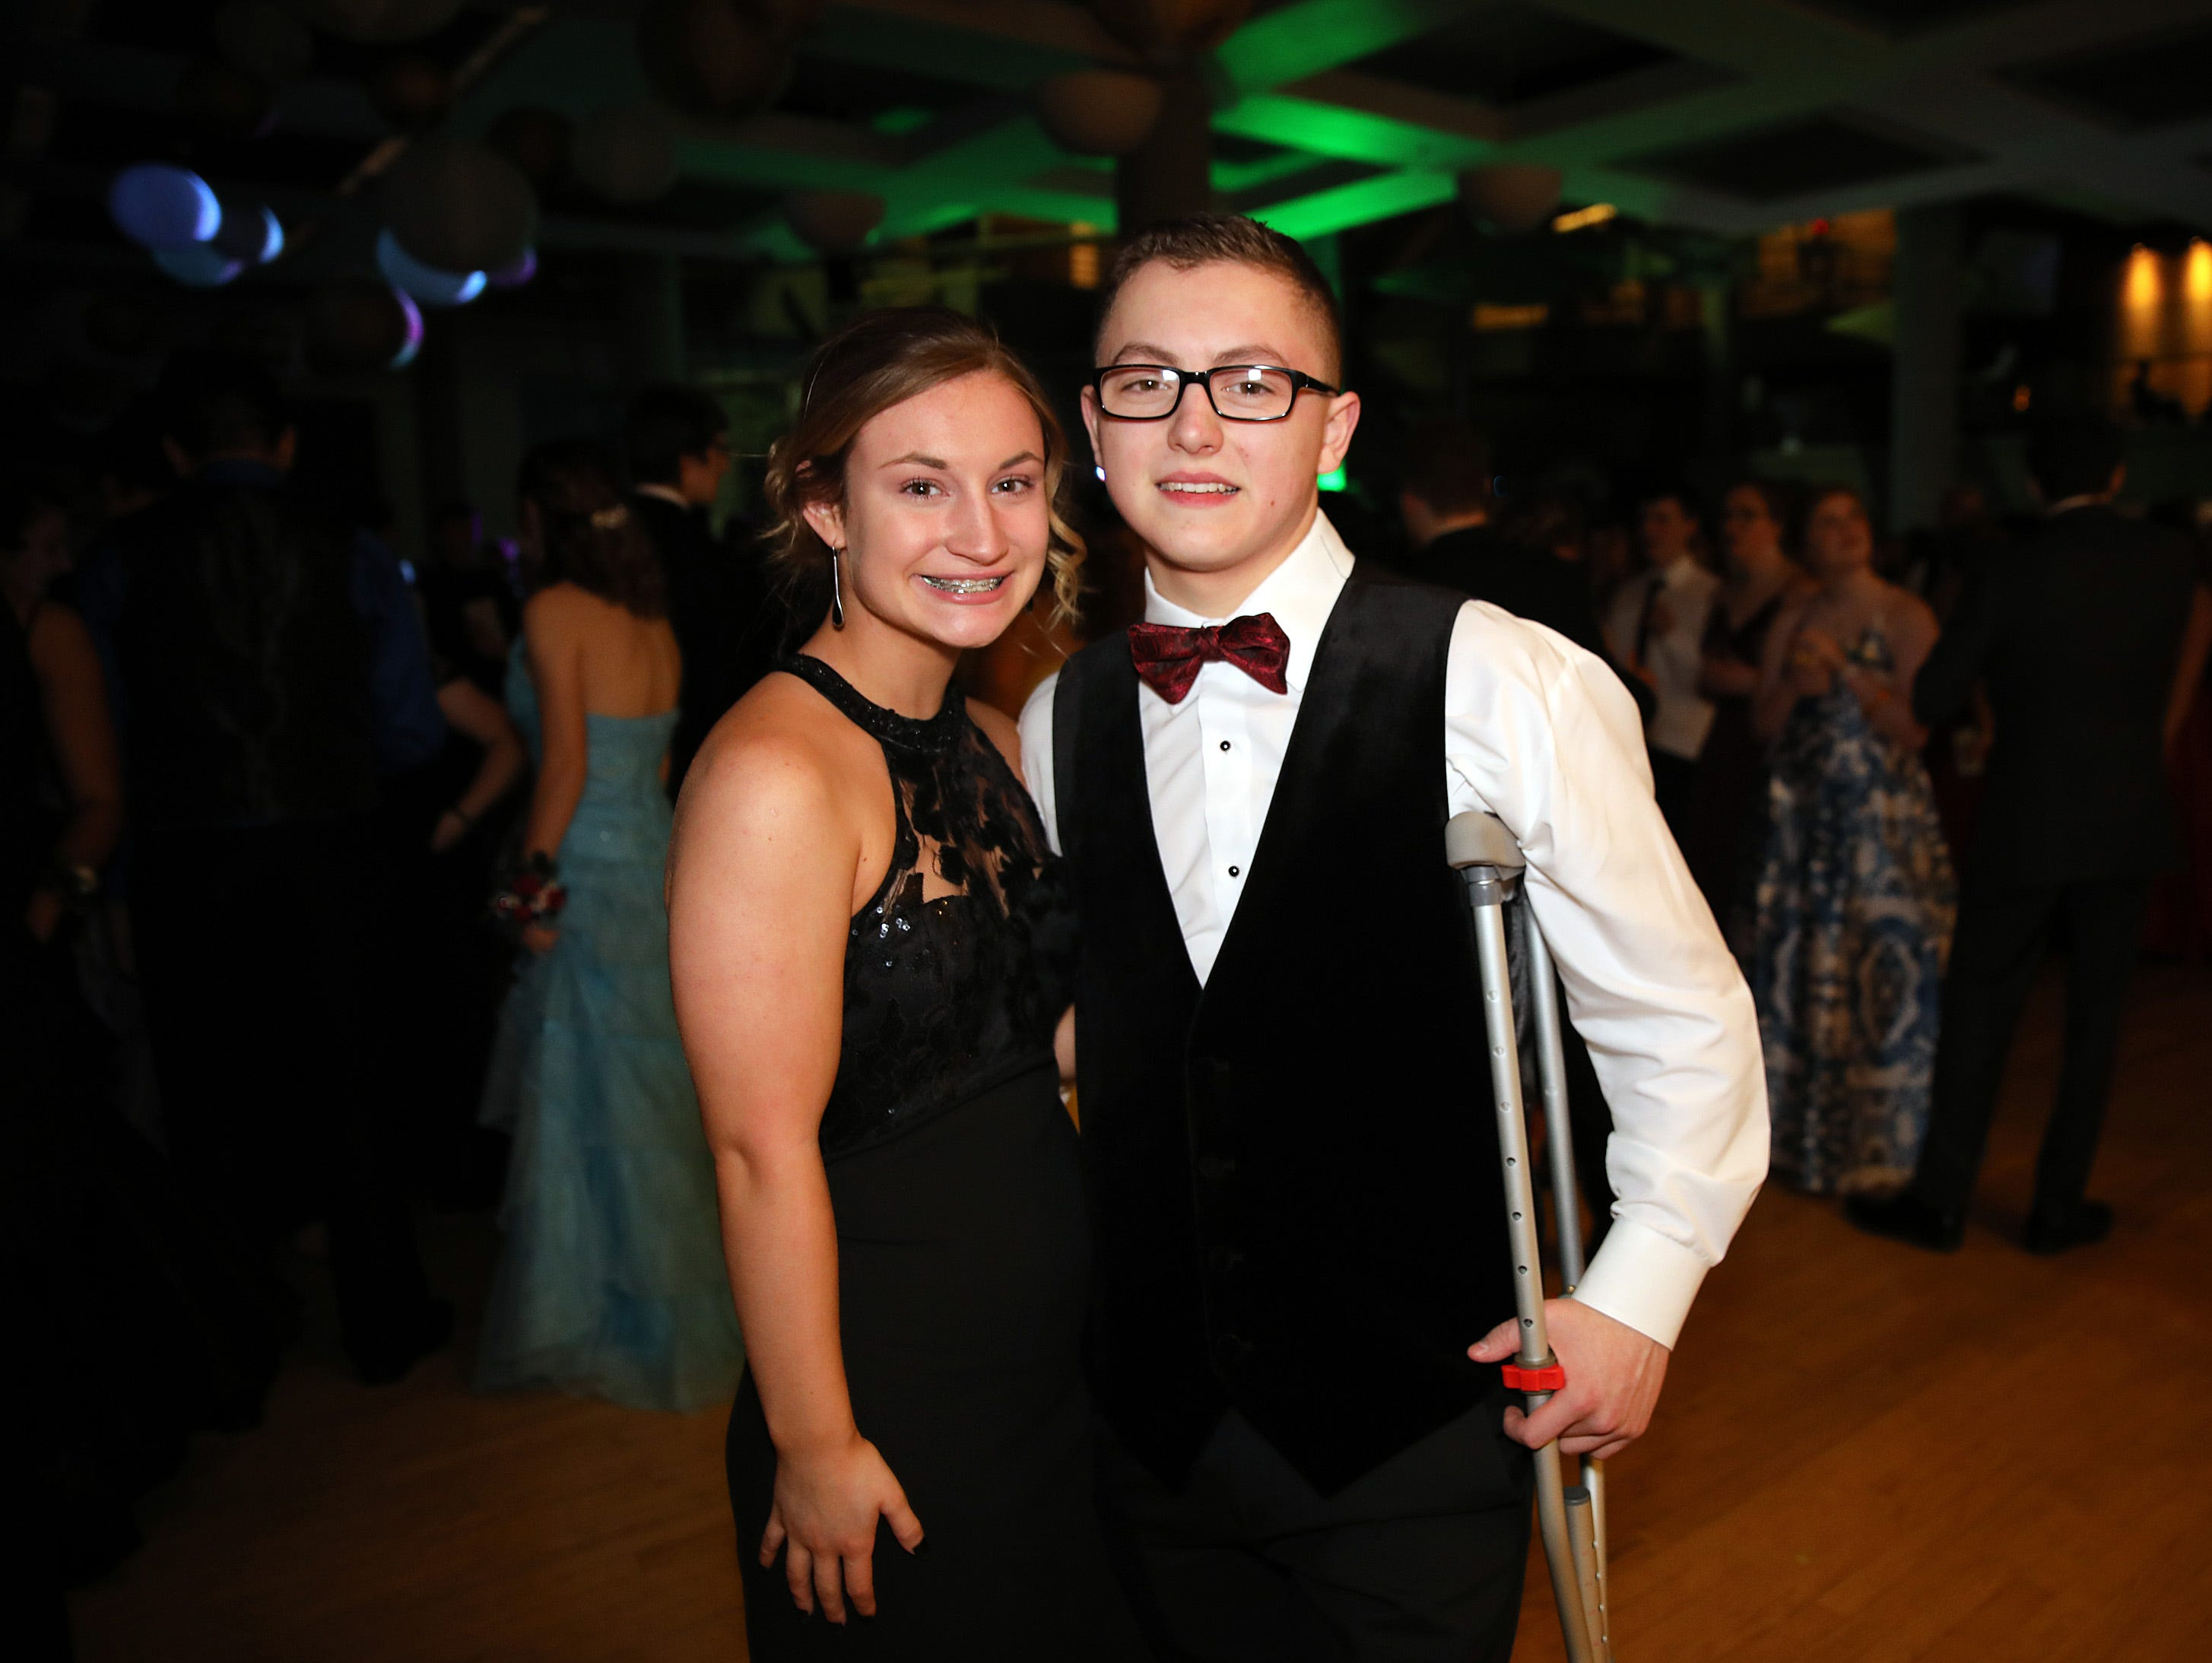 Sophomore Catalina Wiedershott and junior Ian Puentes attend the Ankeny Centennial High School prom at the State Historical Building in Des Moines on Saturday, April 13, 2019.